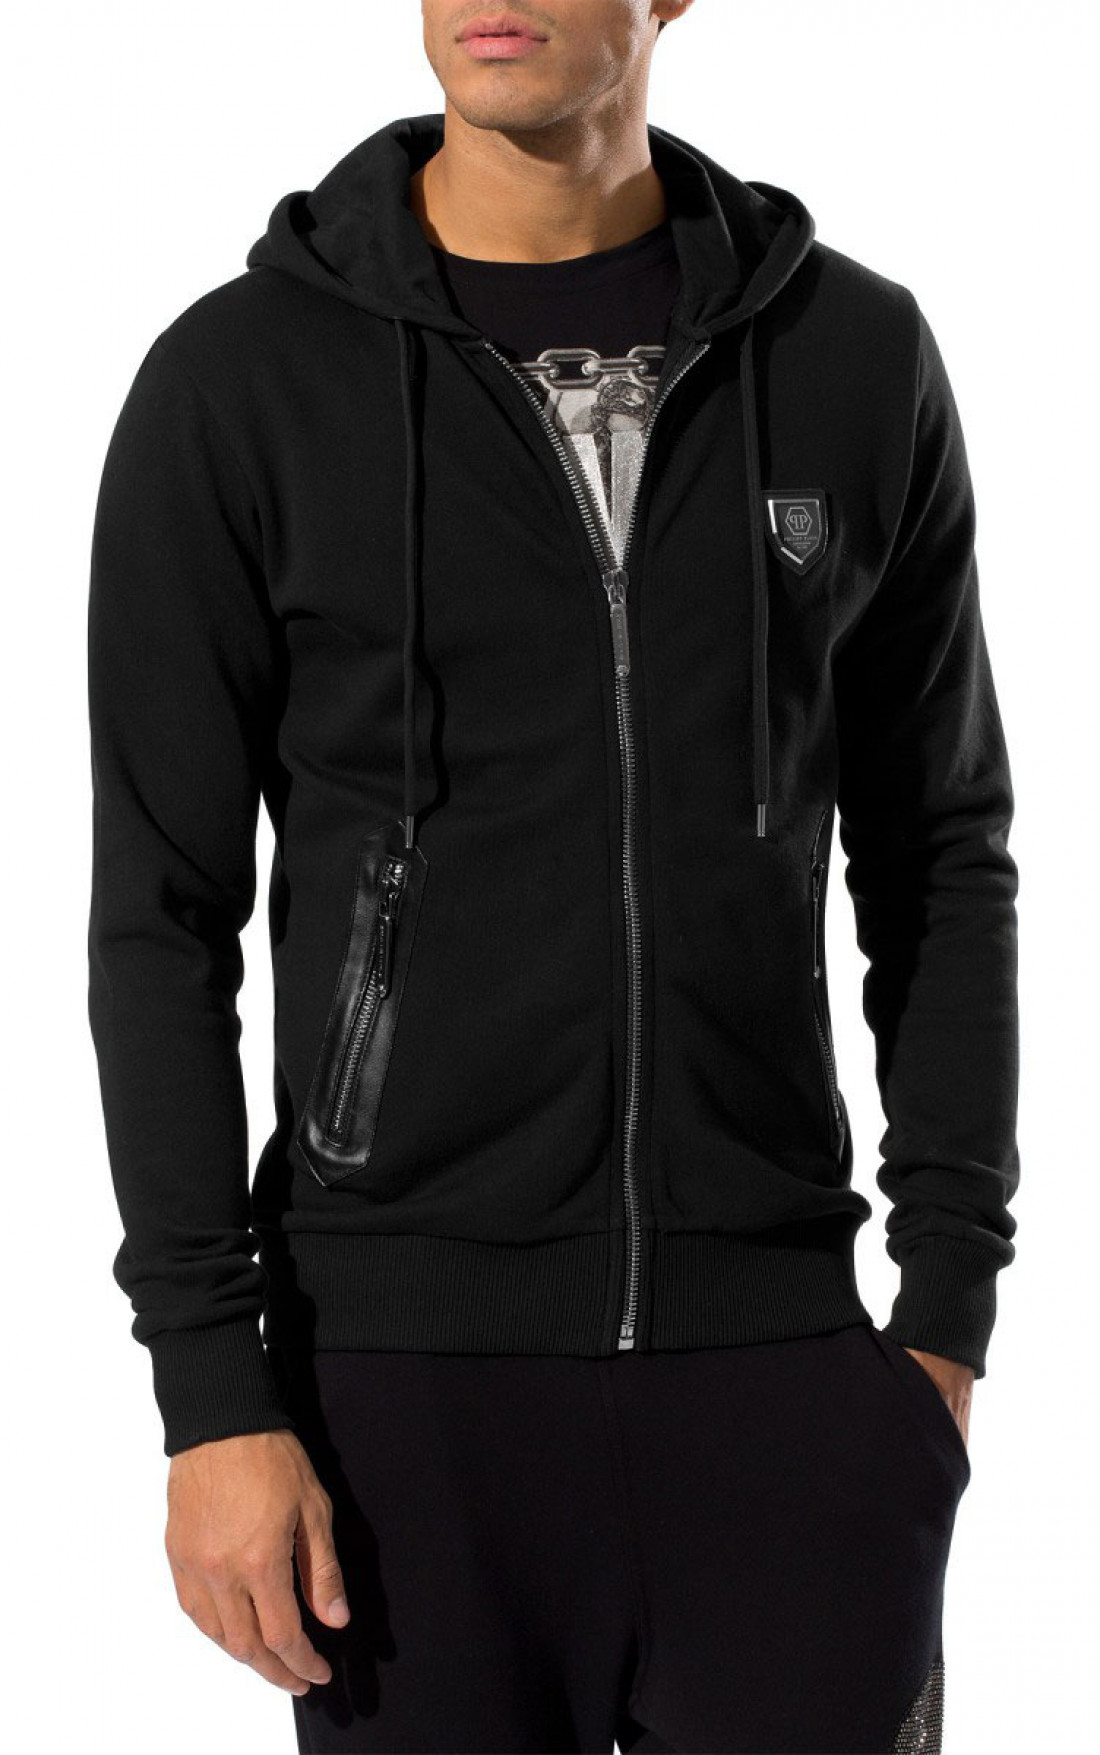 philipp plein hoodie mens black sly hoodie mens hoodies online boudi fashion ss15 hm666090. Black Bedroom Furniture Sets. Home Design Ideas